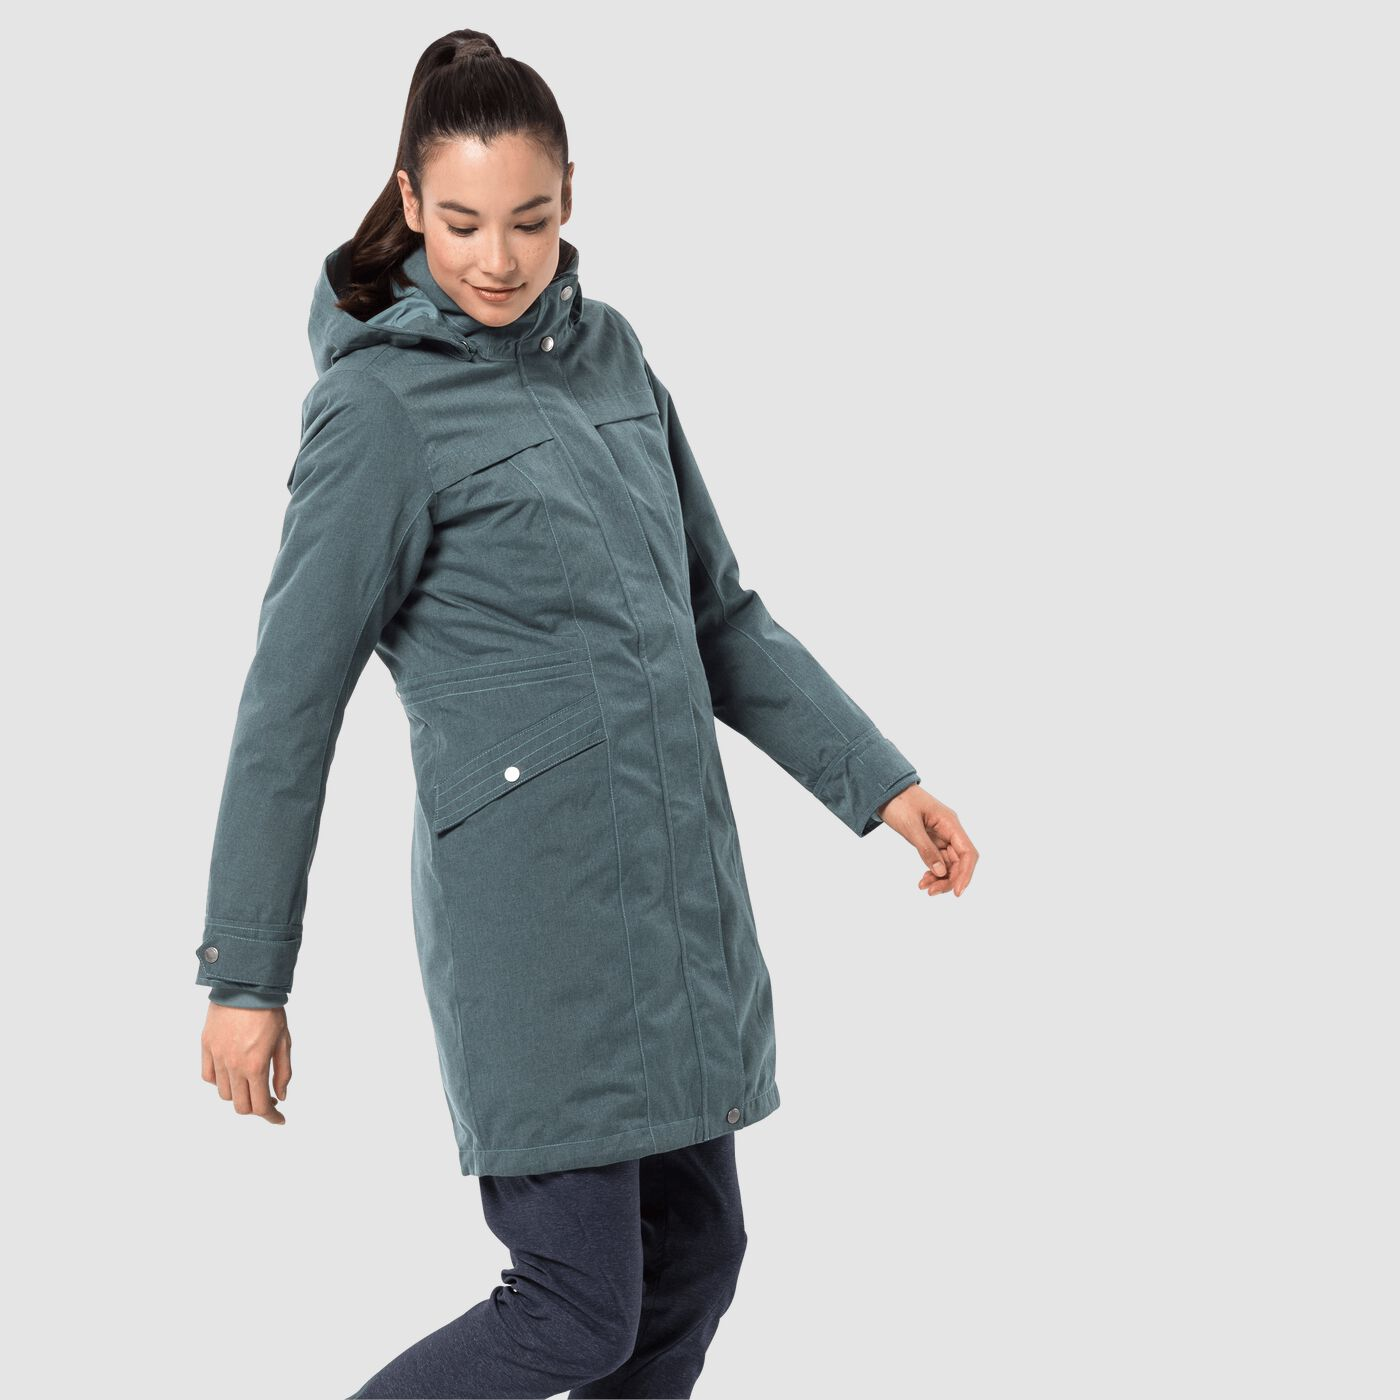 GOLDEN PEAK 3IN1 COAT W